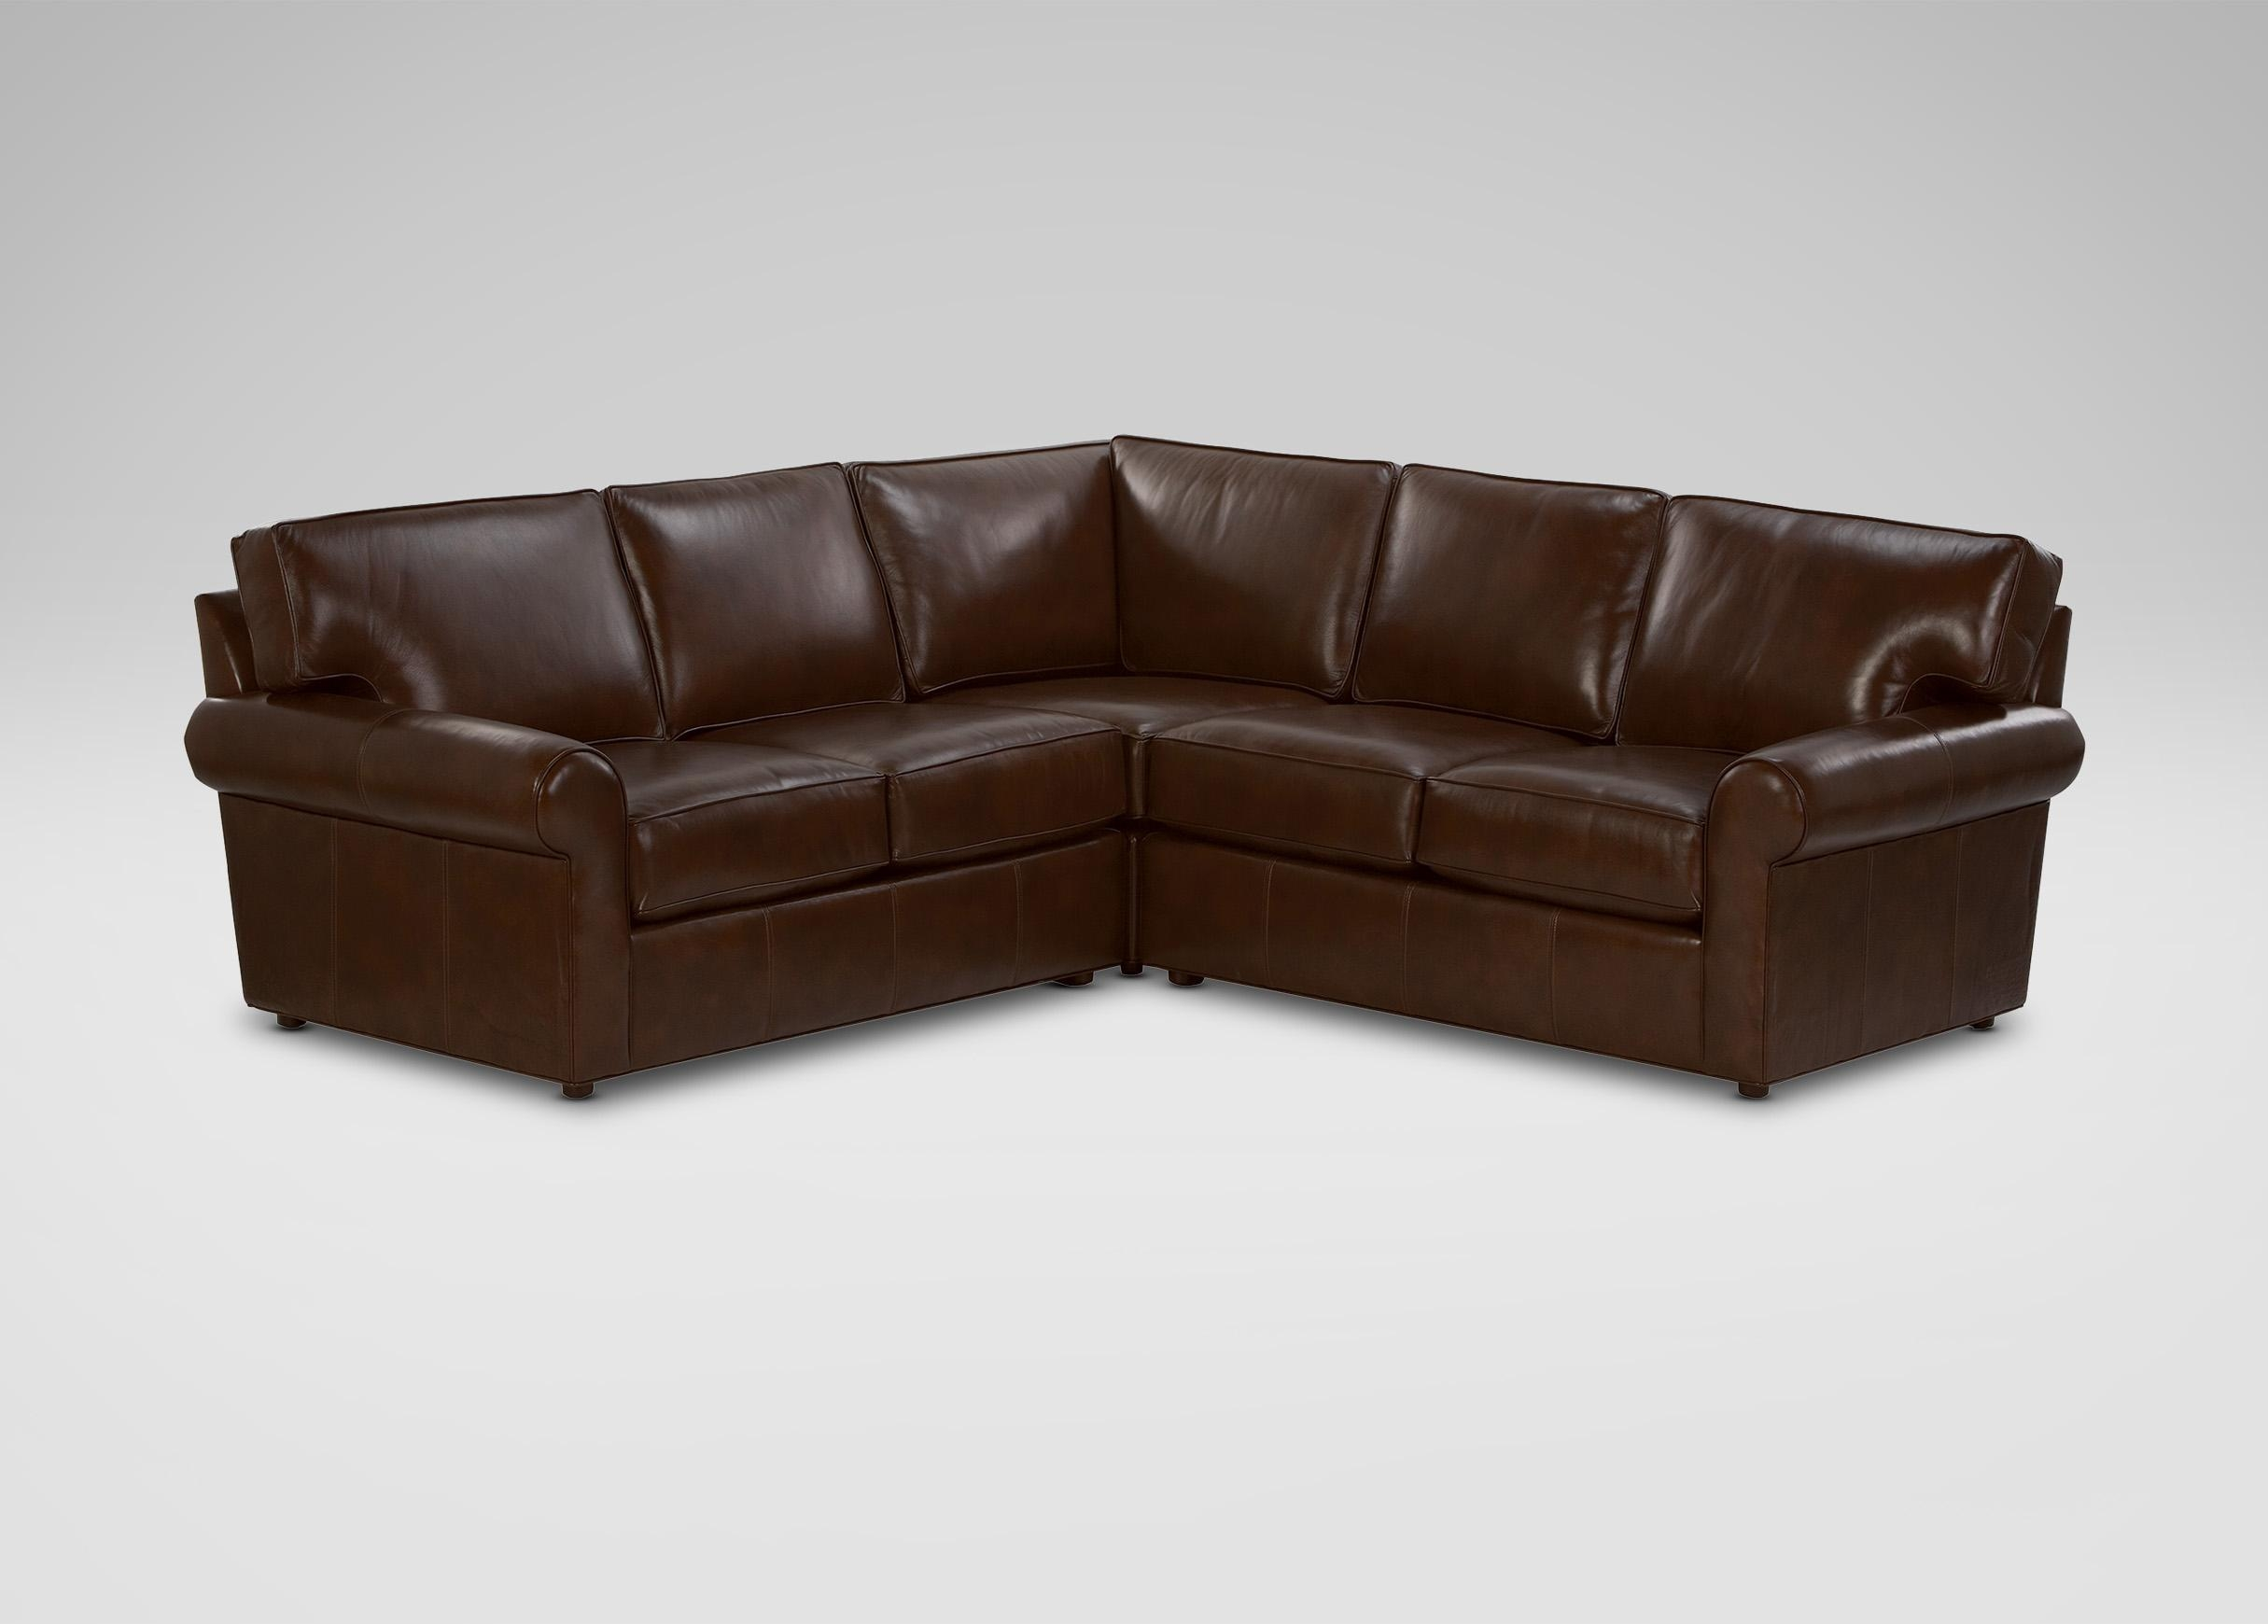 chadwick sofa ethan allen reviews chesterfield buy uk 20 top sofas ideas